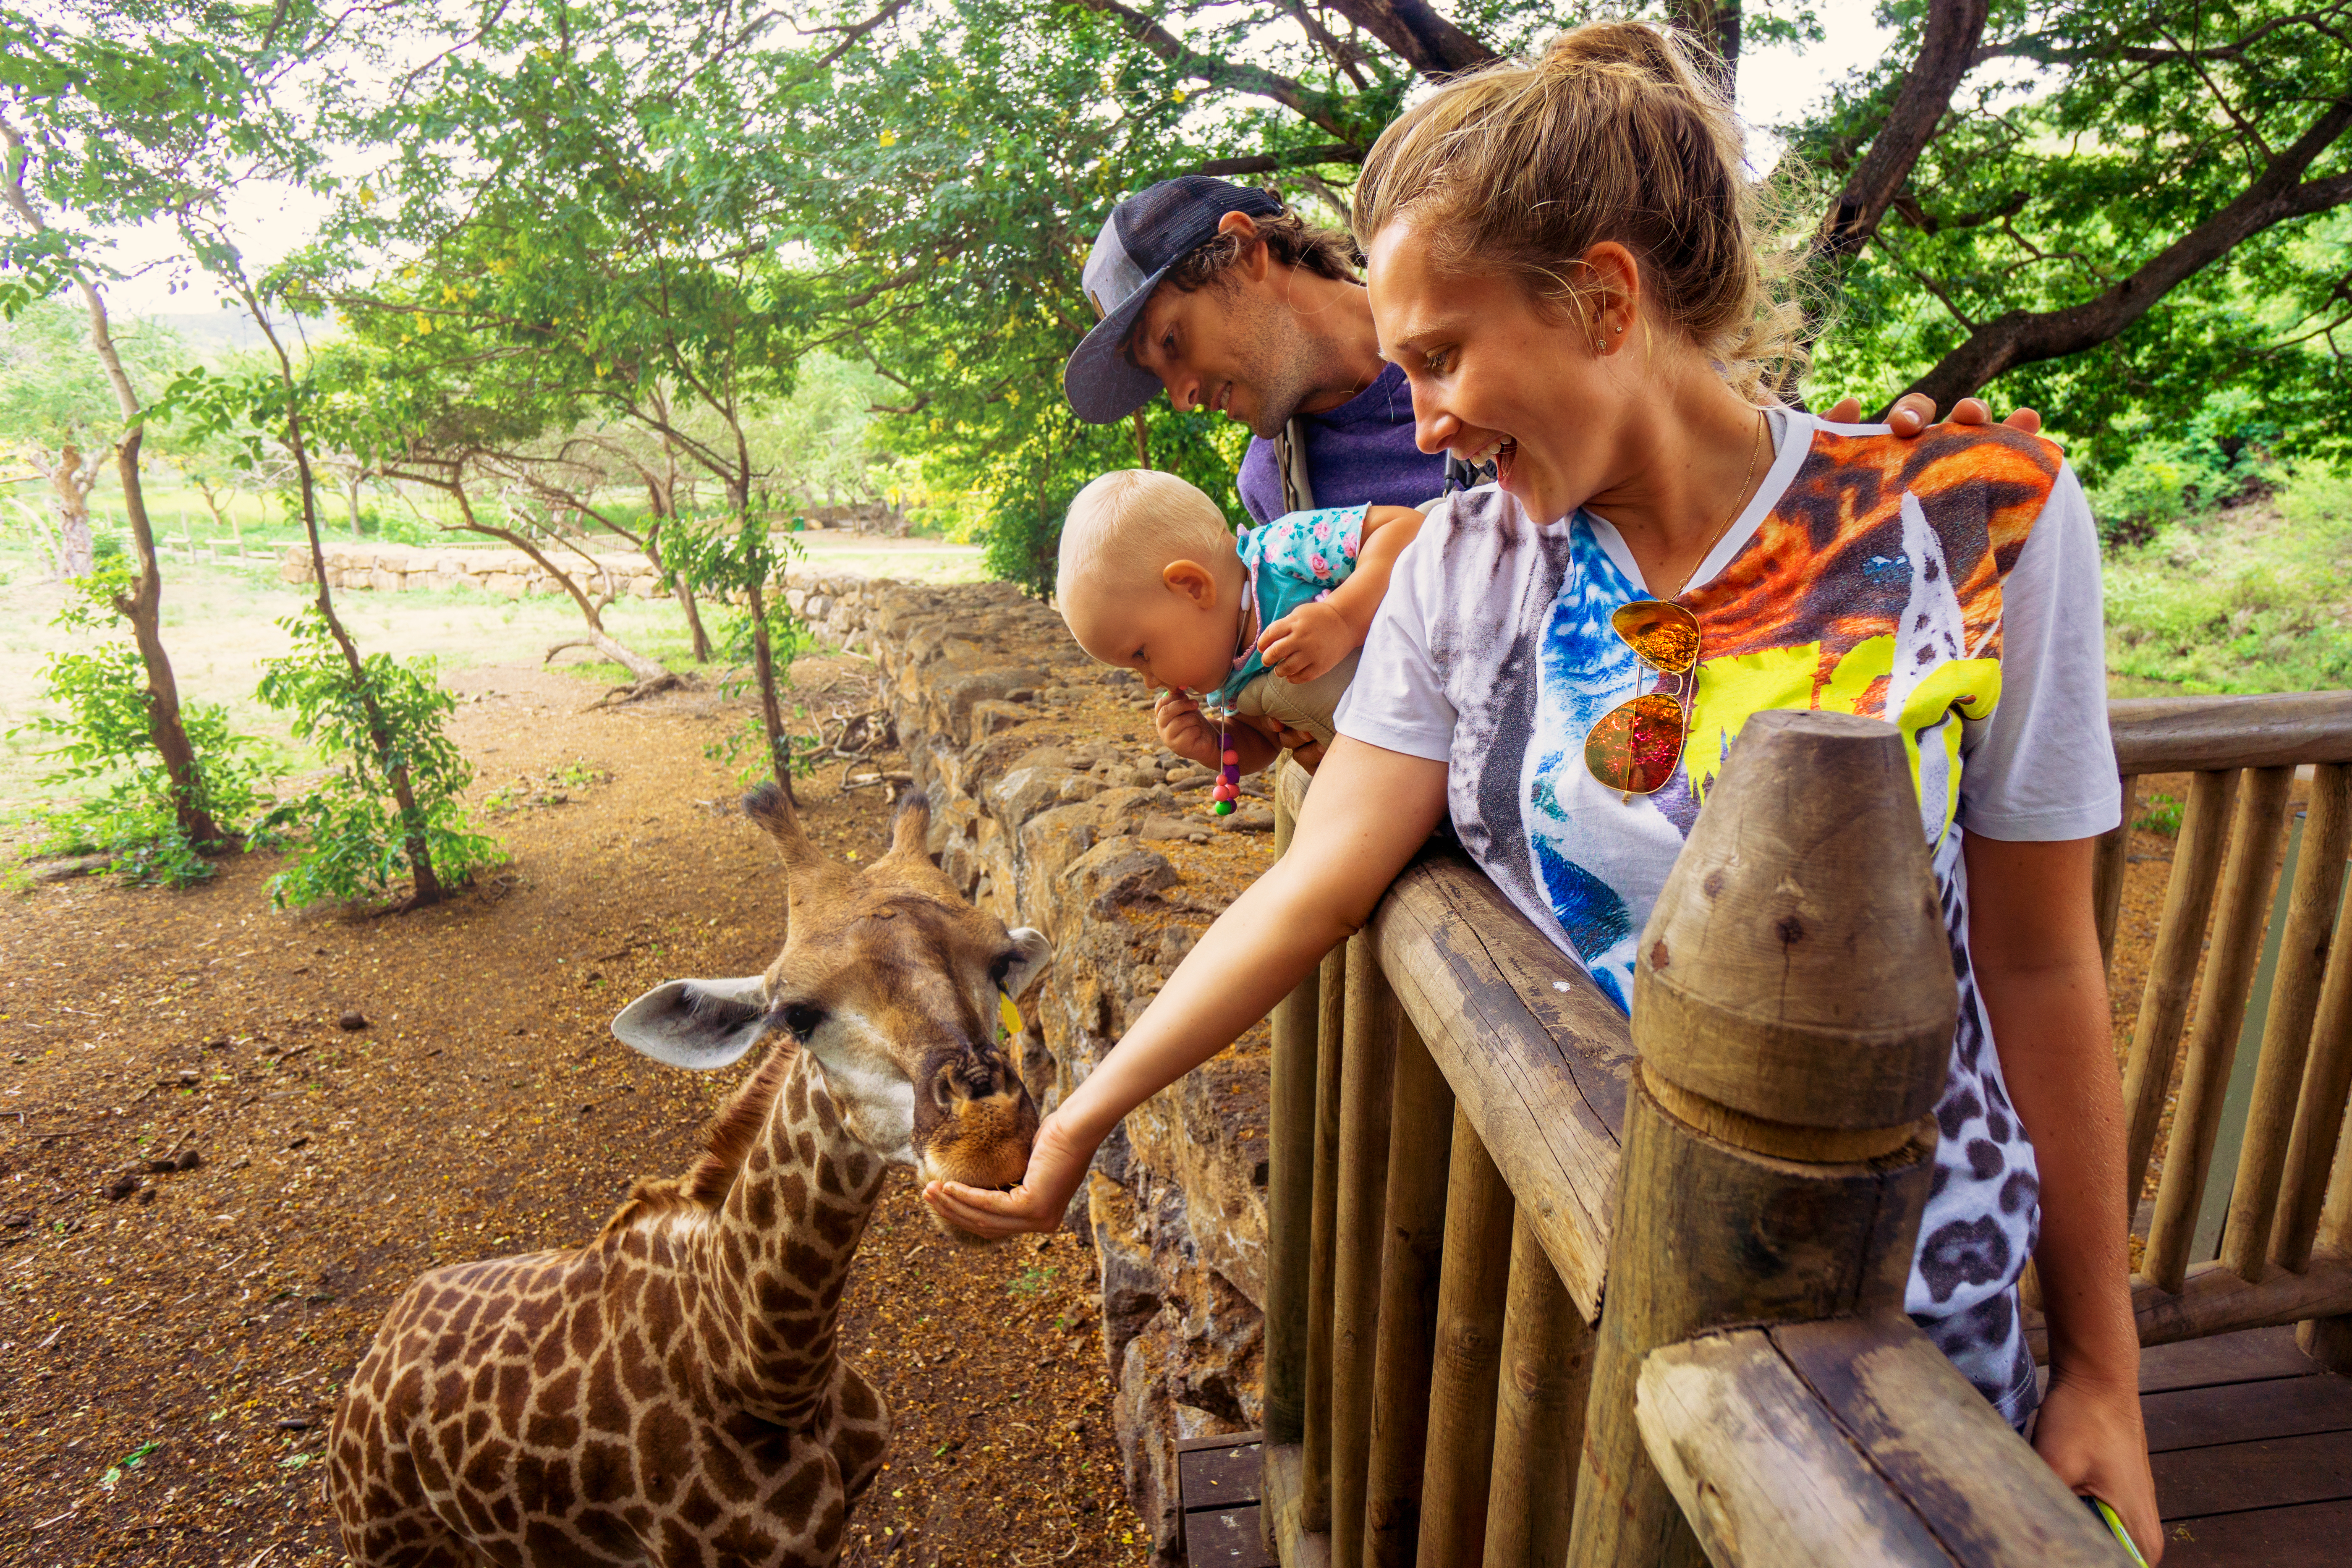 Young couple feeding giraffe at Casela World of Adventures Mauritius